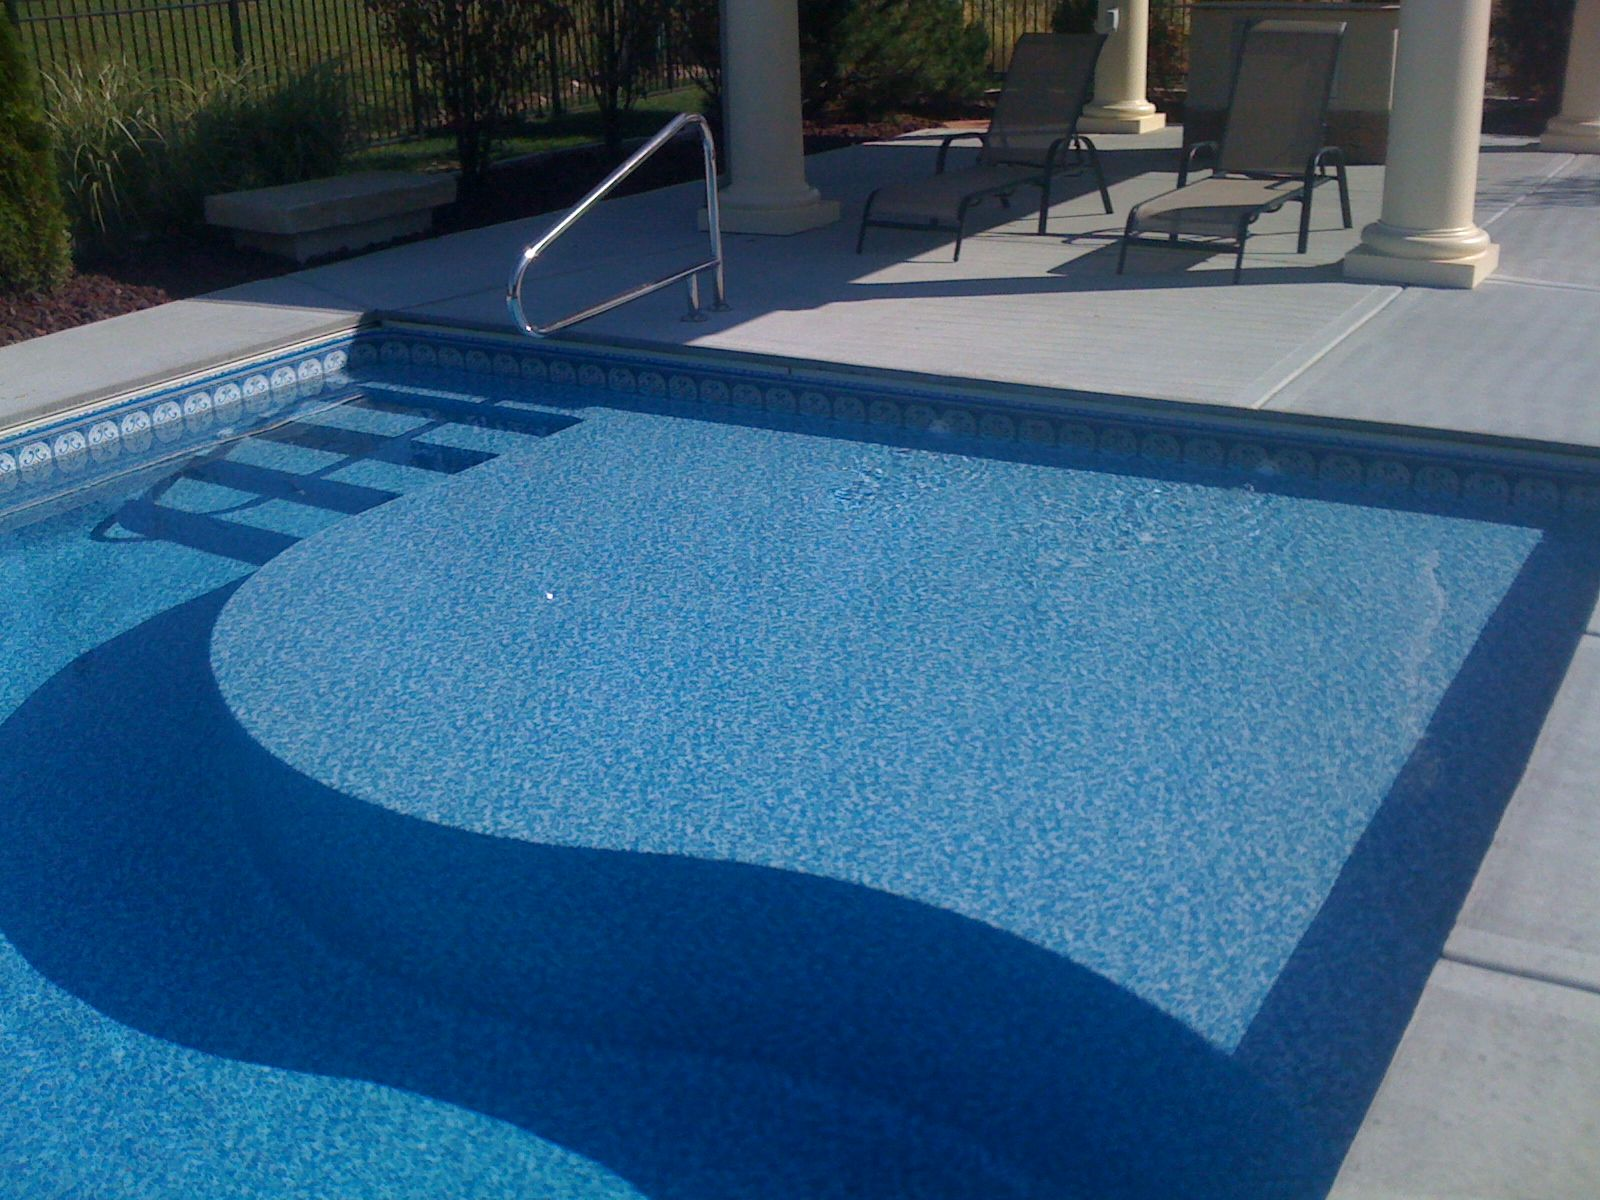 a tanning ledge in a pool designed and built by caribbean pools